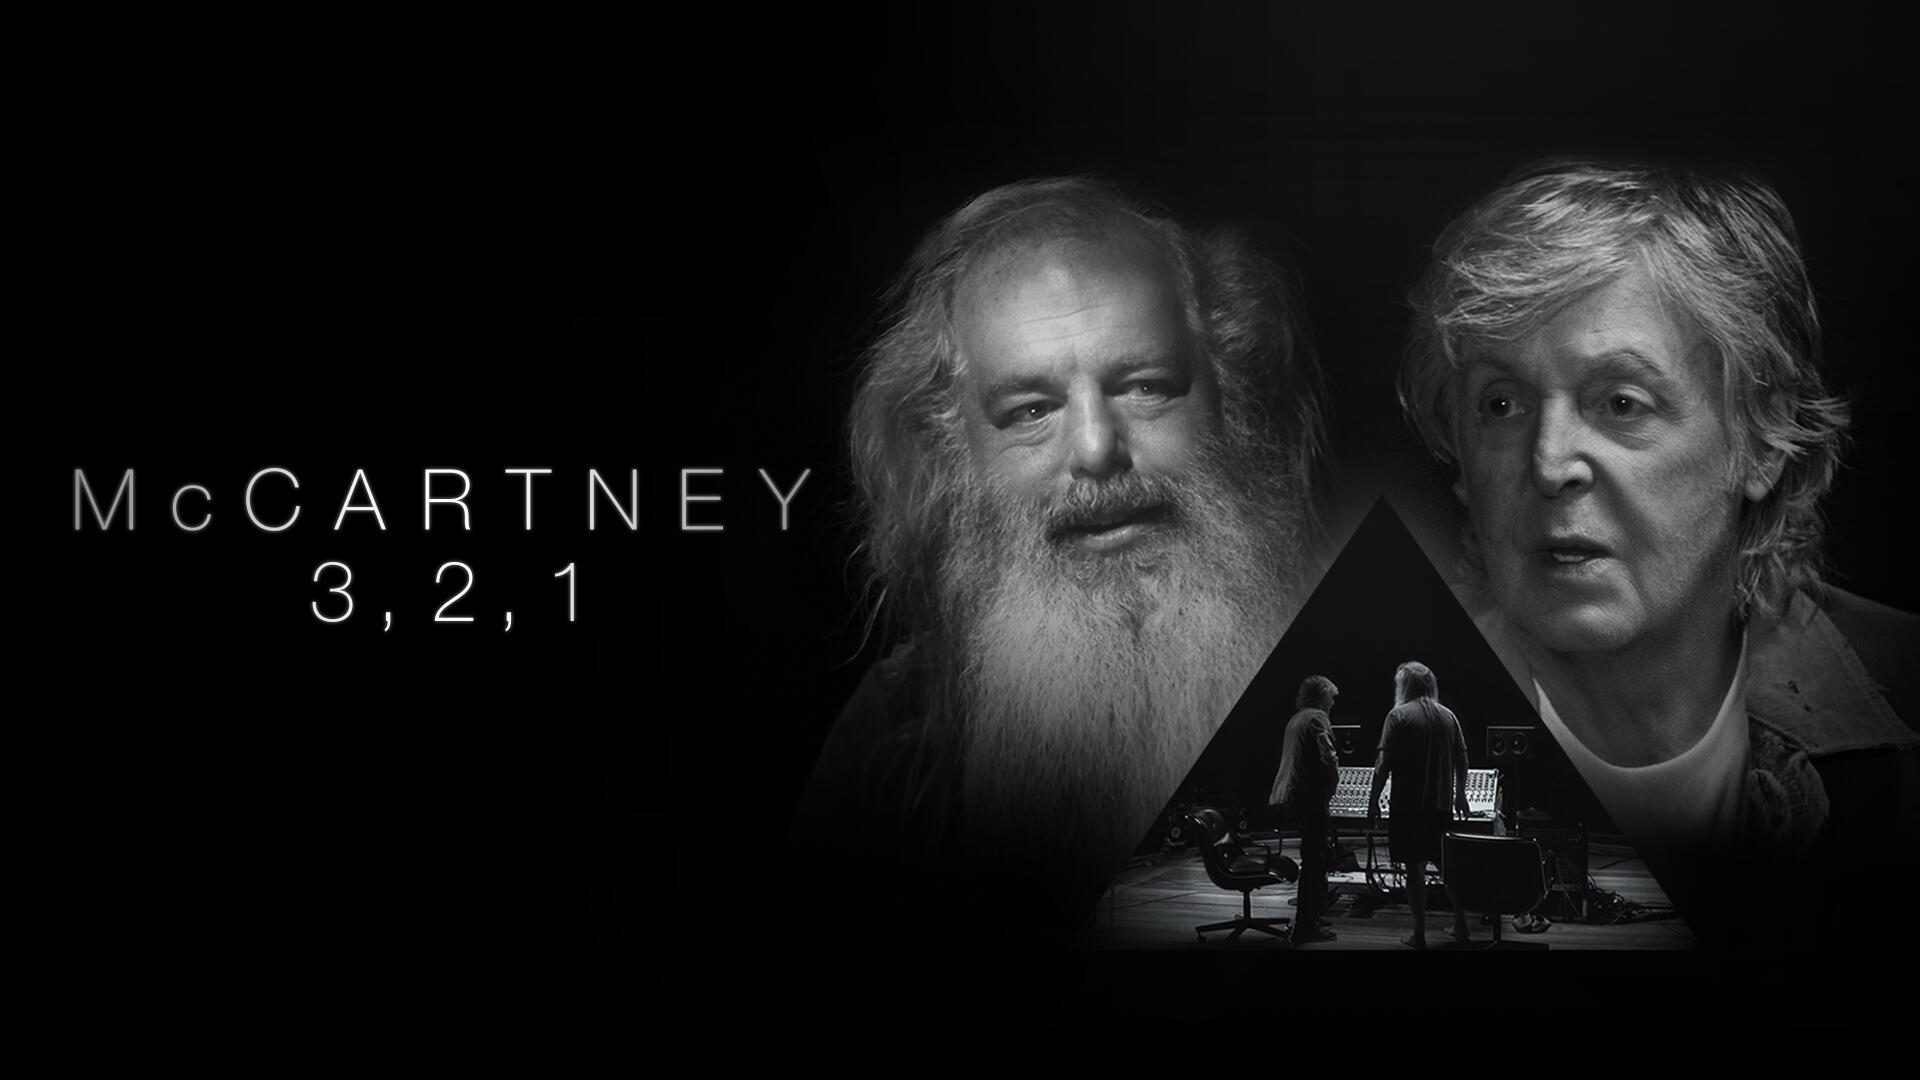 McCartney 3,2,1 -- Paul McCartney sits down for a rare, in-depth, one on one with legendary producer Rick Rubin to discuss his groundbreaking work with The Beatles, the emblematic 70s arena rock of Wings and his 50 years and counting as a solo artist. In this six-episode series that explores music and creativity in a unique and revelatory manner, join Paul and Rick for an intimate conversation about the songwriting, influences, and personal relationships that informed the iconic songs that have served as the soundtracks of our lives. Paul McCartney and Rick Rubin, shown. (Courtesy of Hulu)